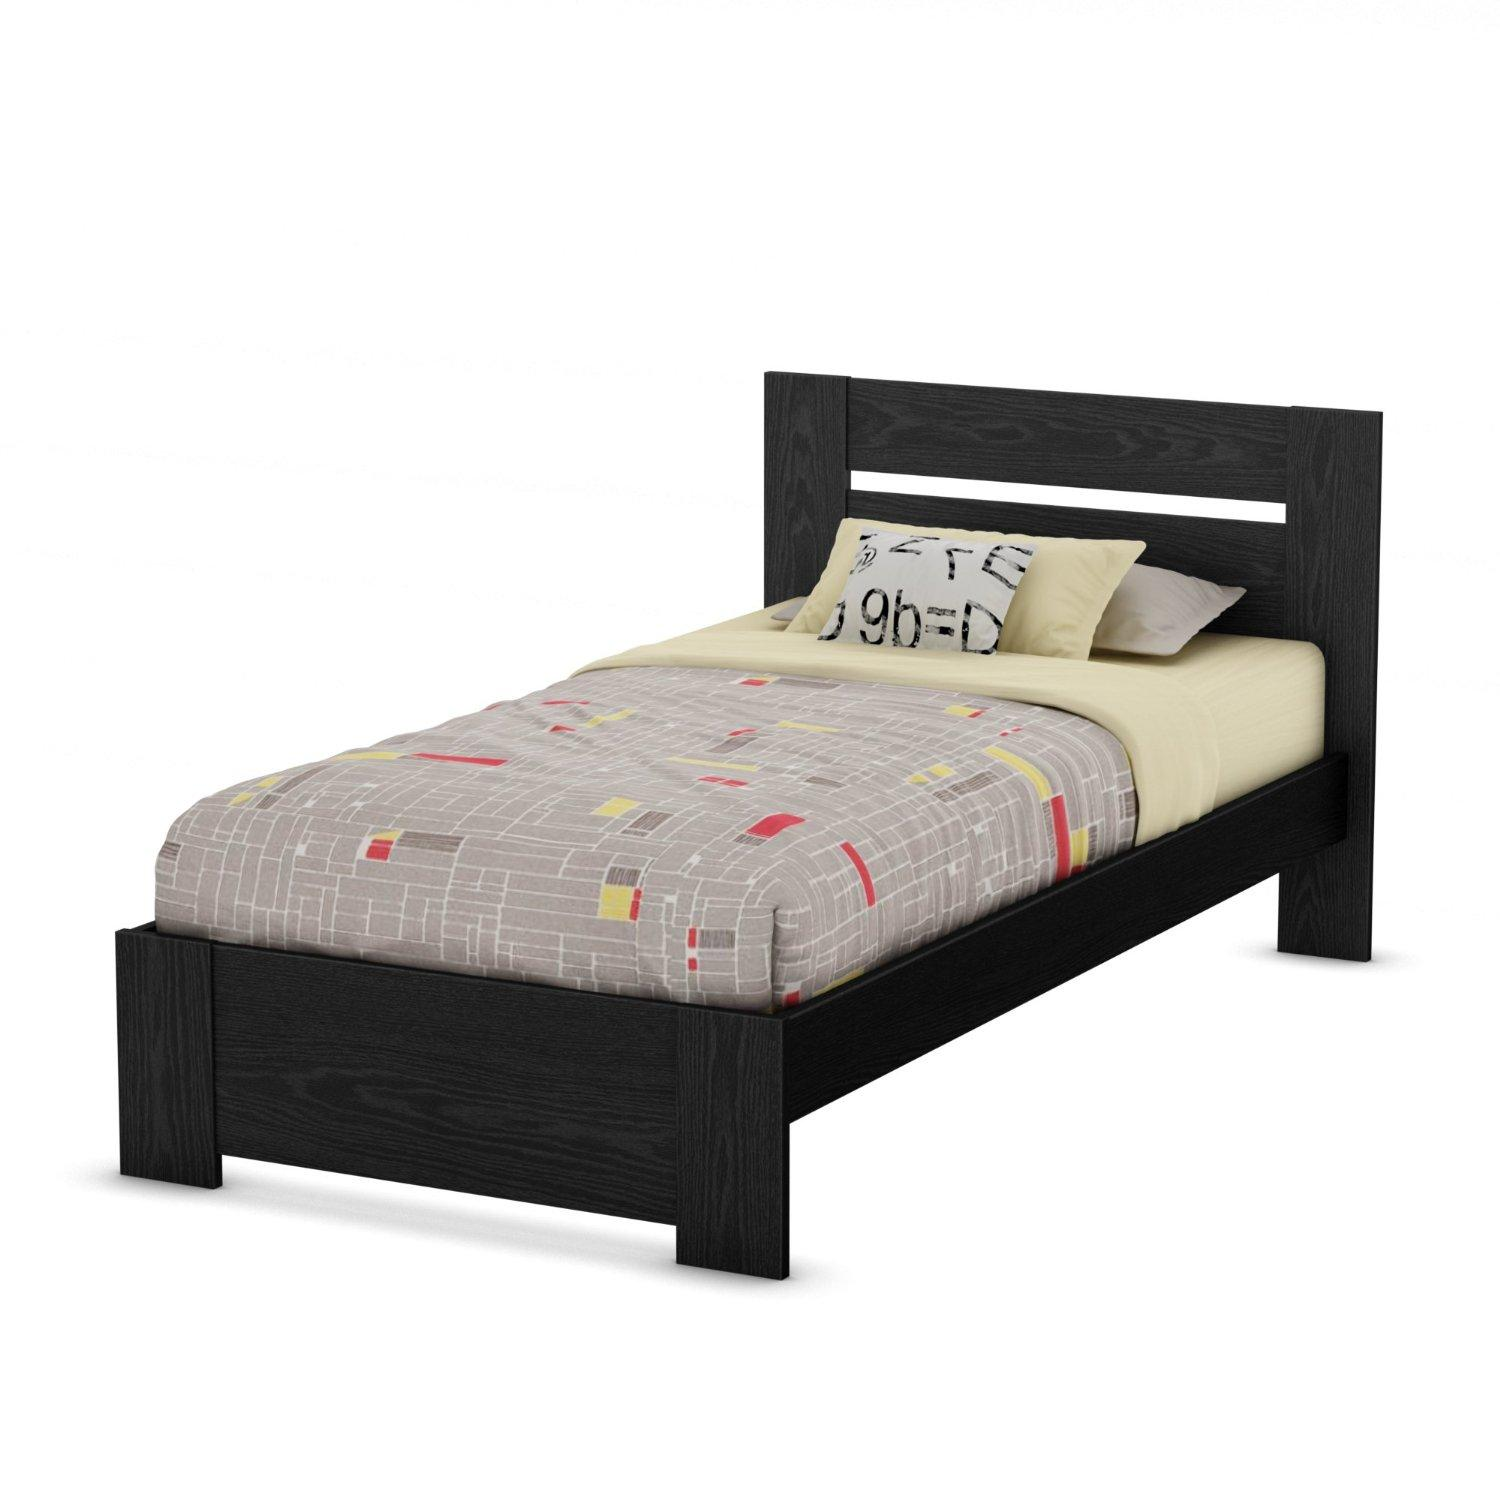 tall bed frame - Bed Frame For Headboard And Footboard